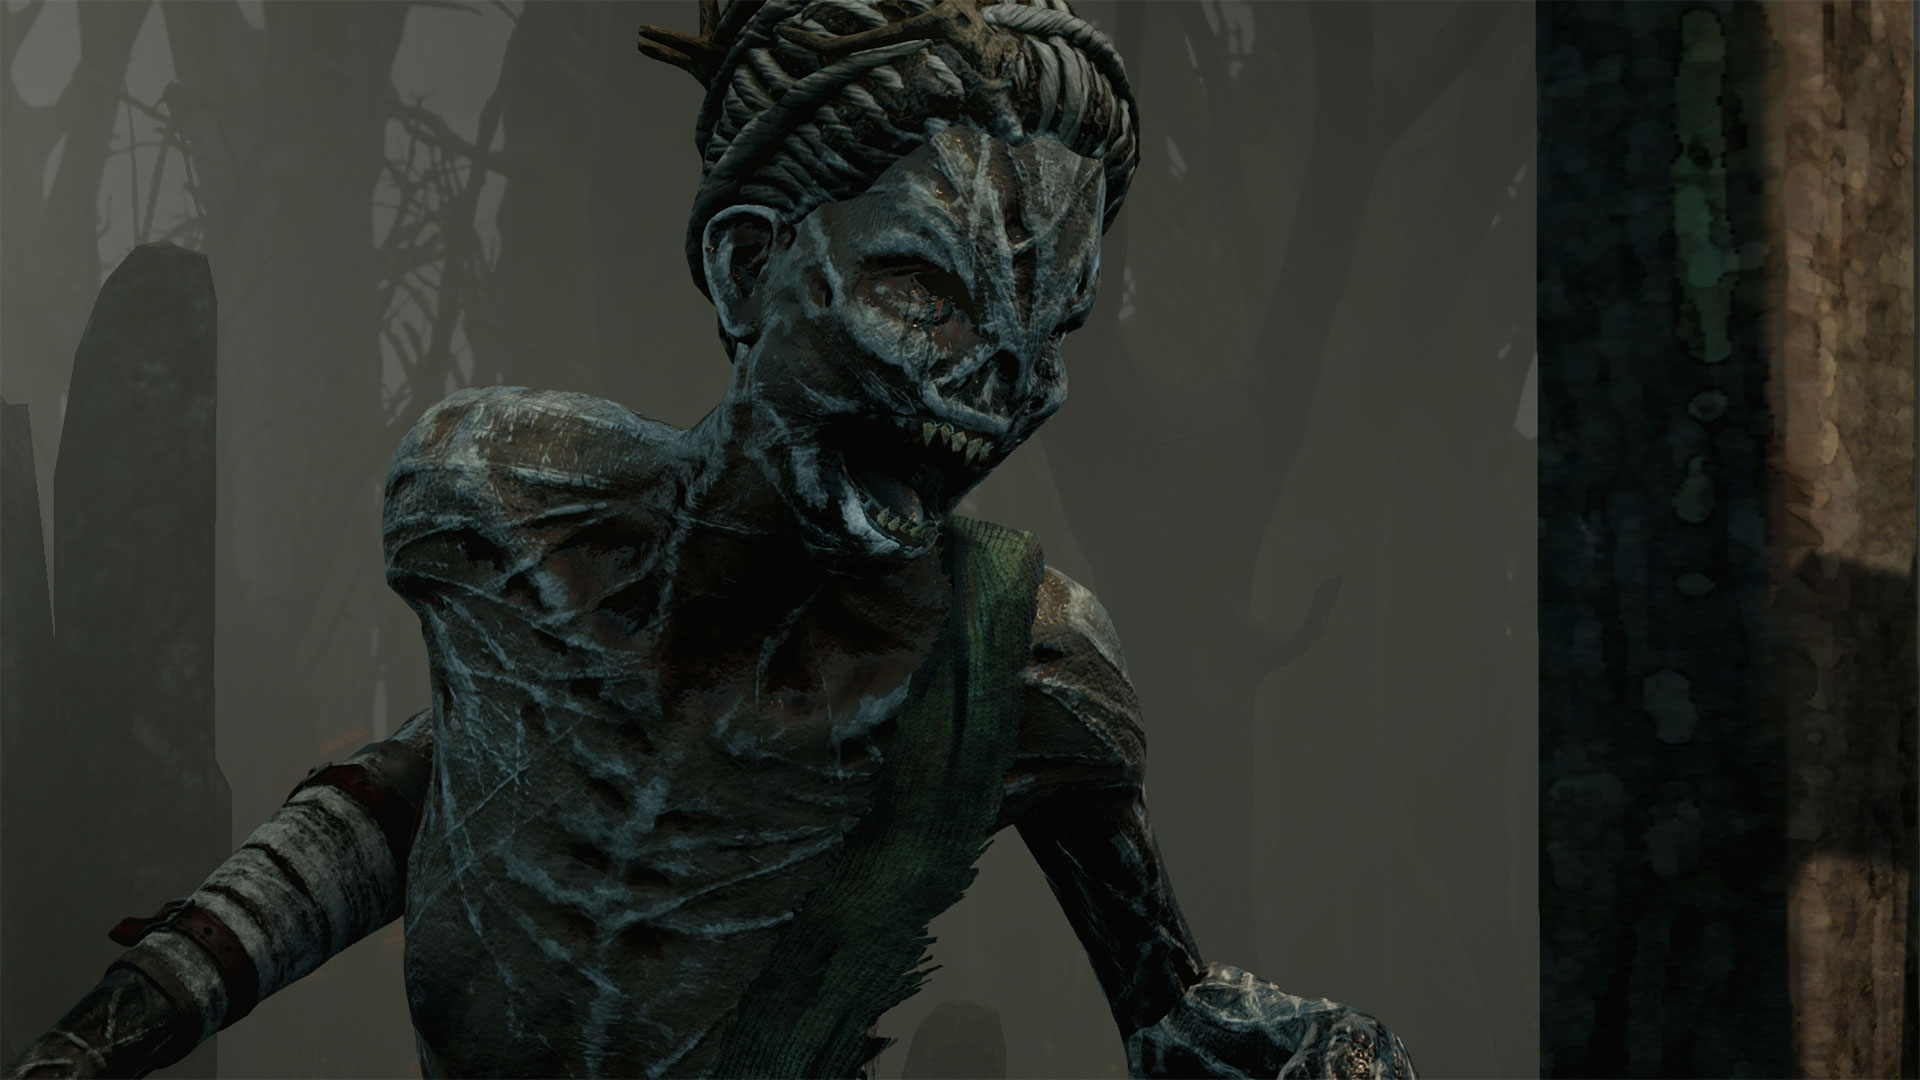 KHAiHOM.com - Dead by Daylight - Of Flesh and Mud Chapter